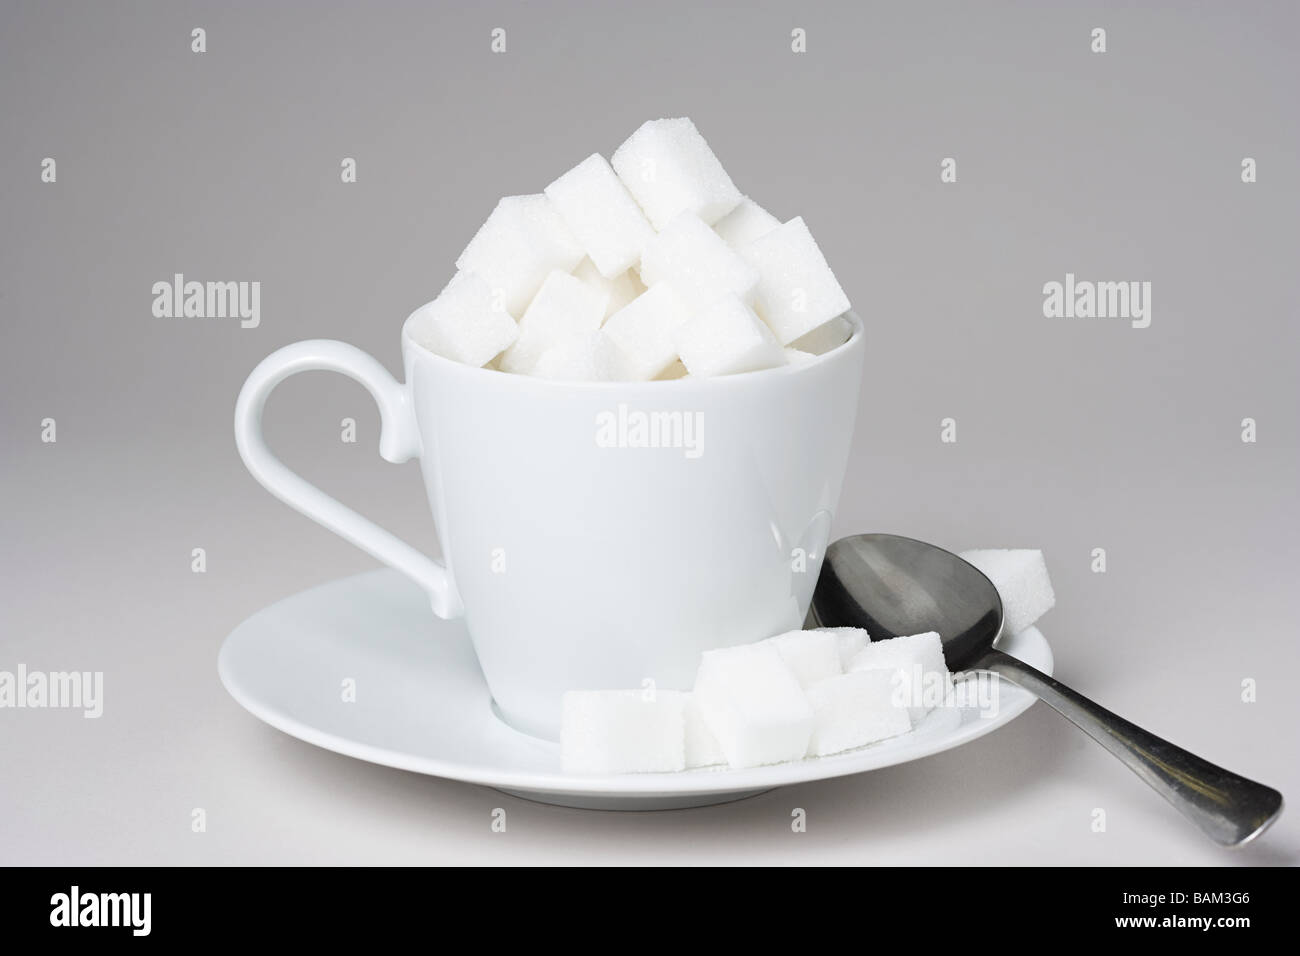 A cup full of sugar lumps - Stock Image